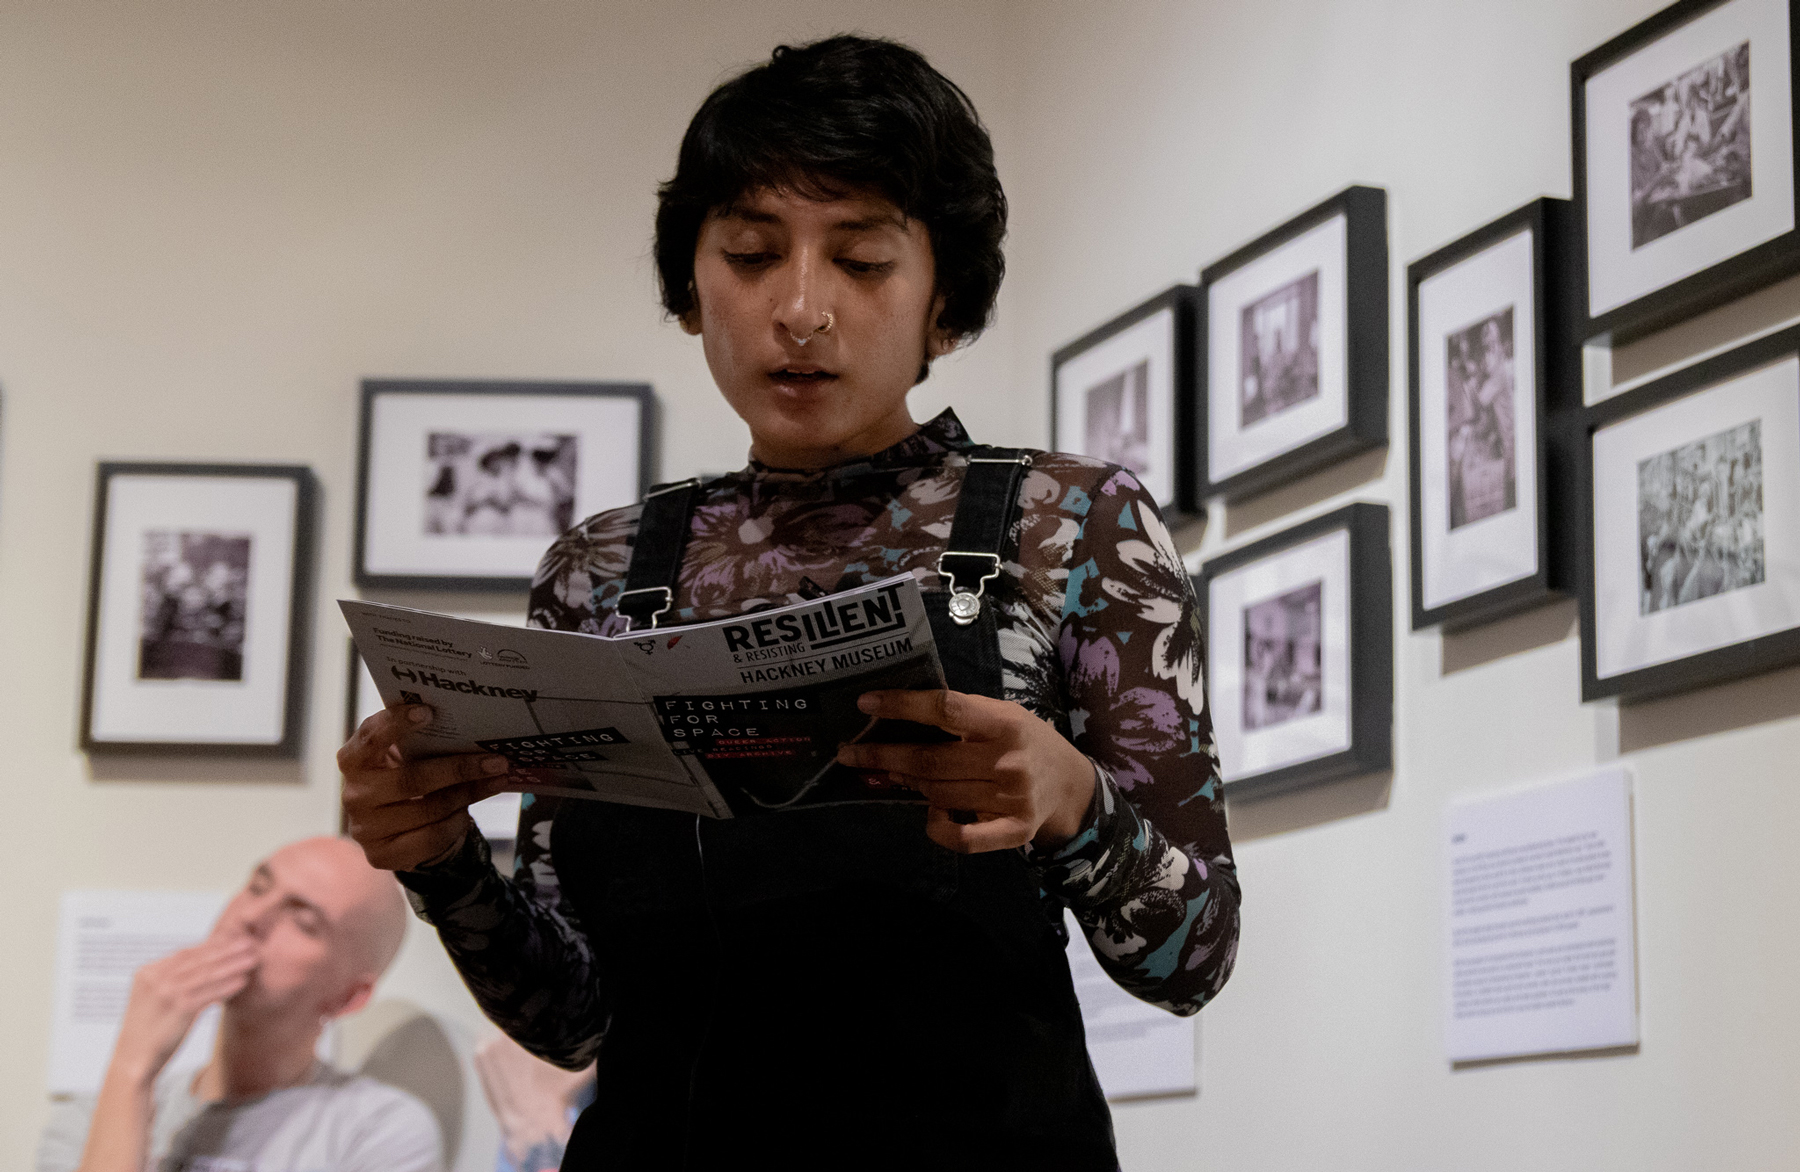 Reading at Hackney Museum LGBT History month from the Fighting For Space zine